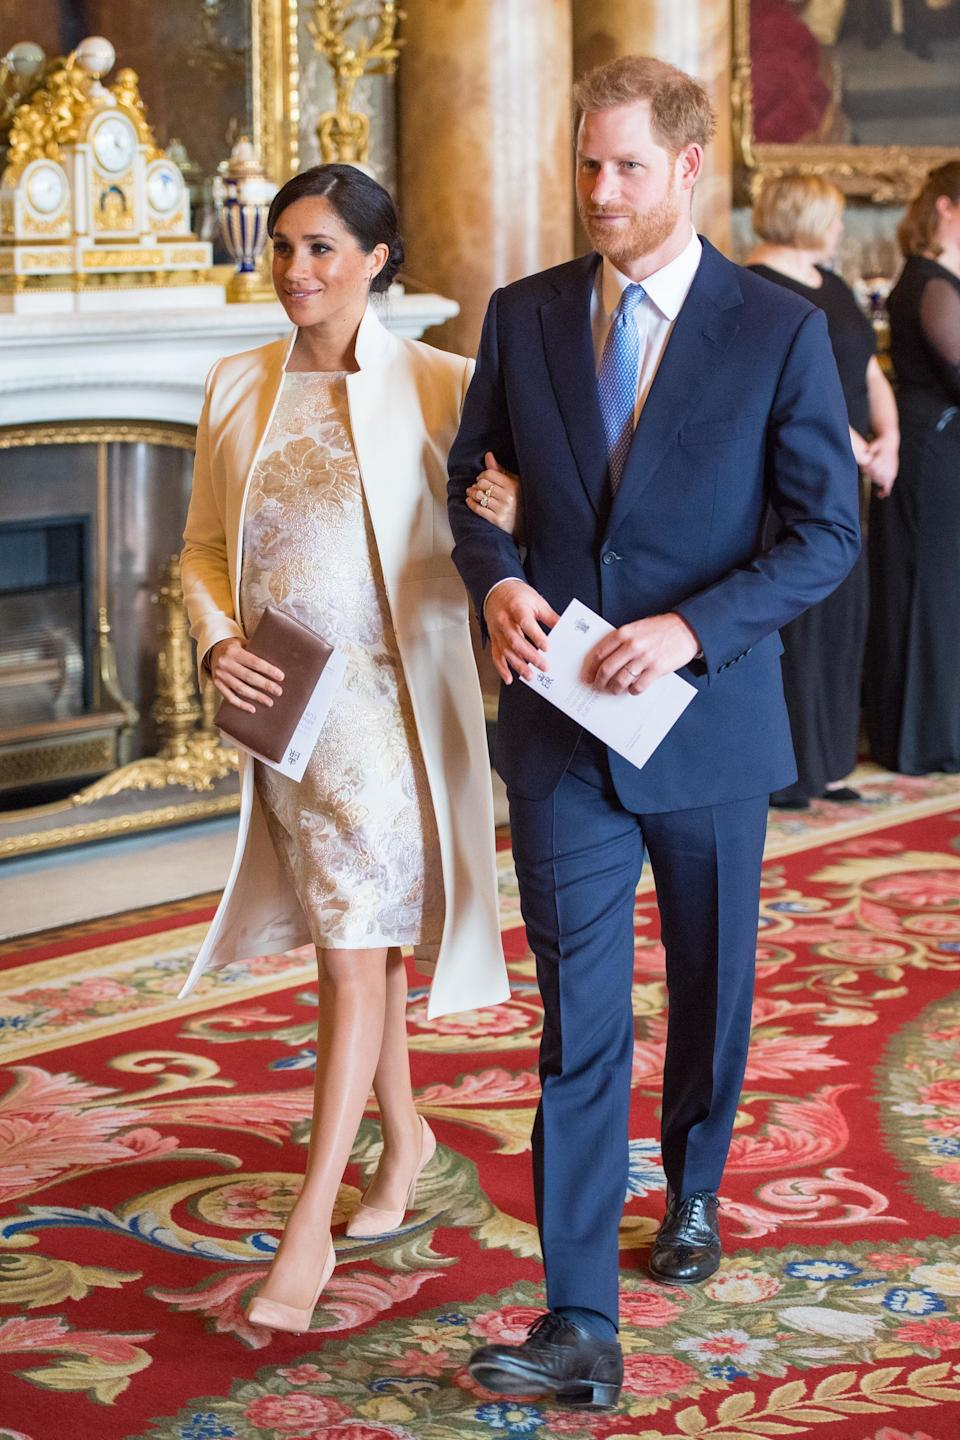 The Duchess of Sussex attended a Buckingham Palace reception in the gold and brocade dress [Photo: Getty]